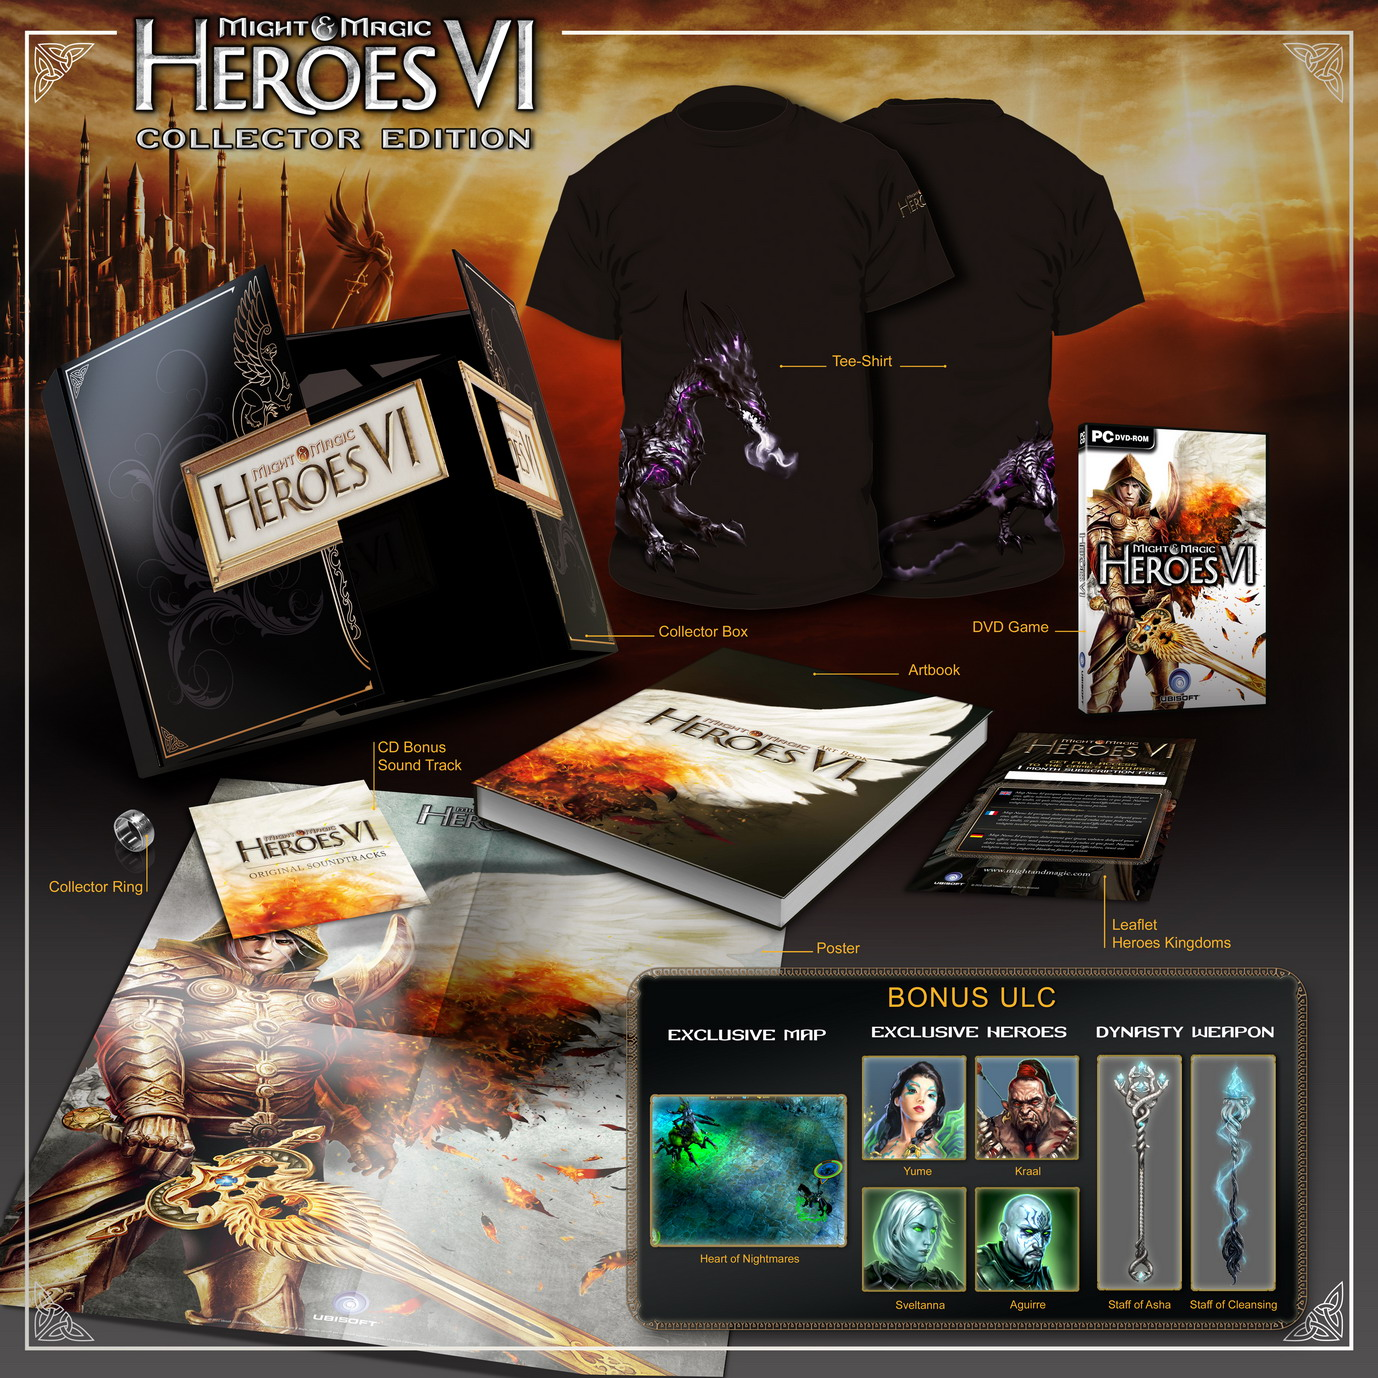 Heroes VI Collector's Edition